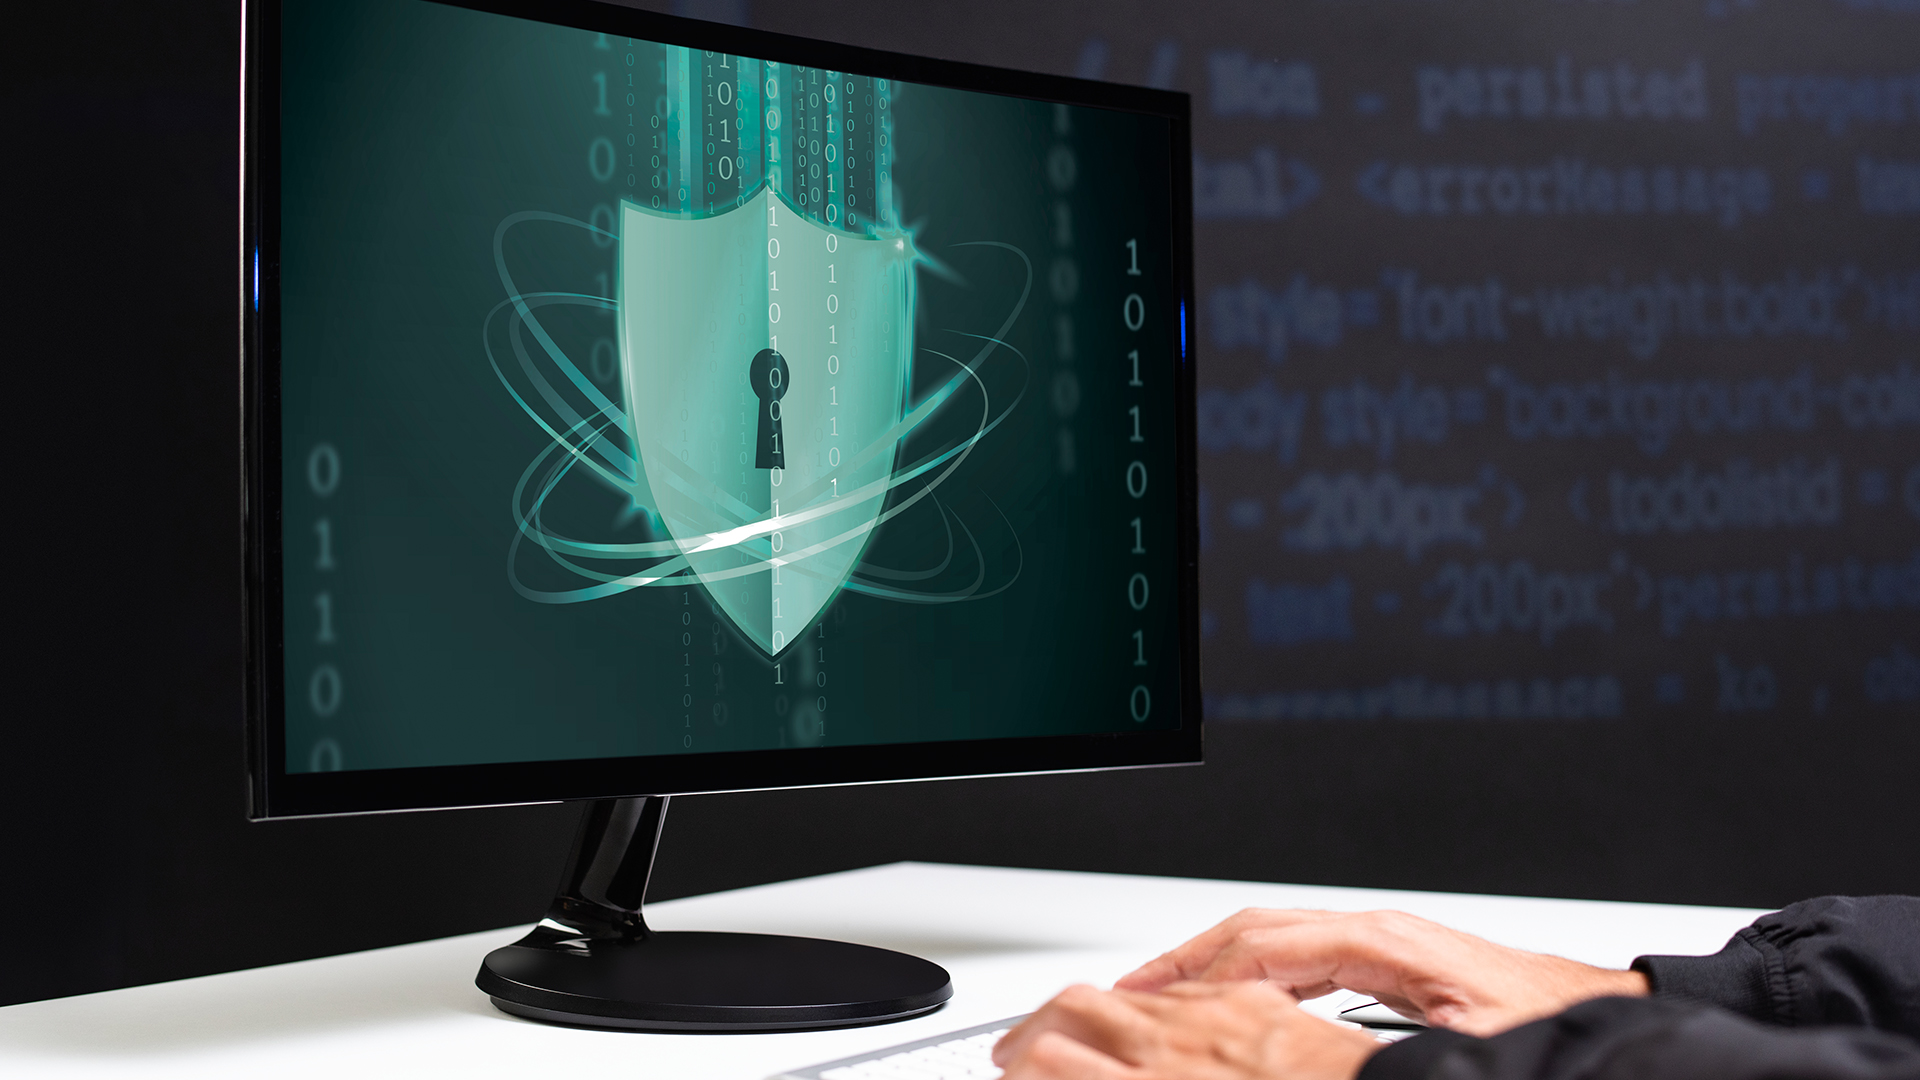 Akamai launches solution to counter fraud and account takeover